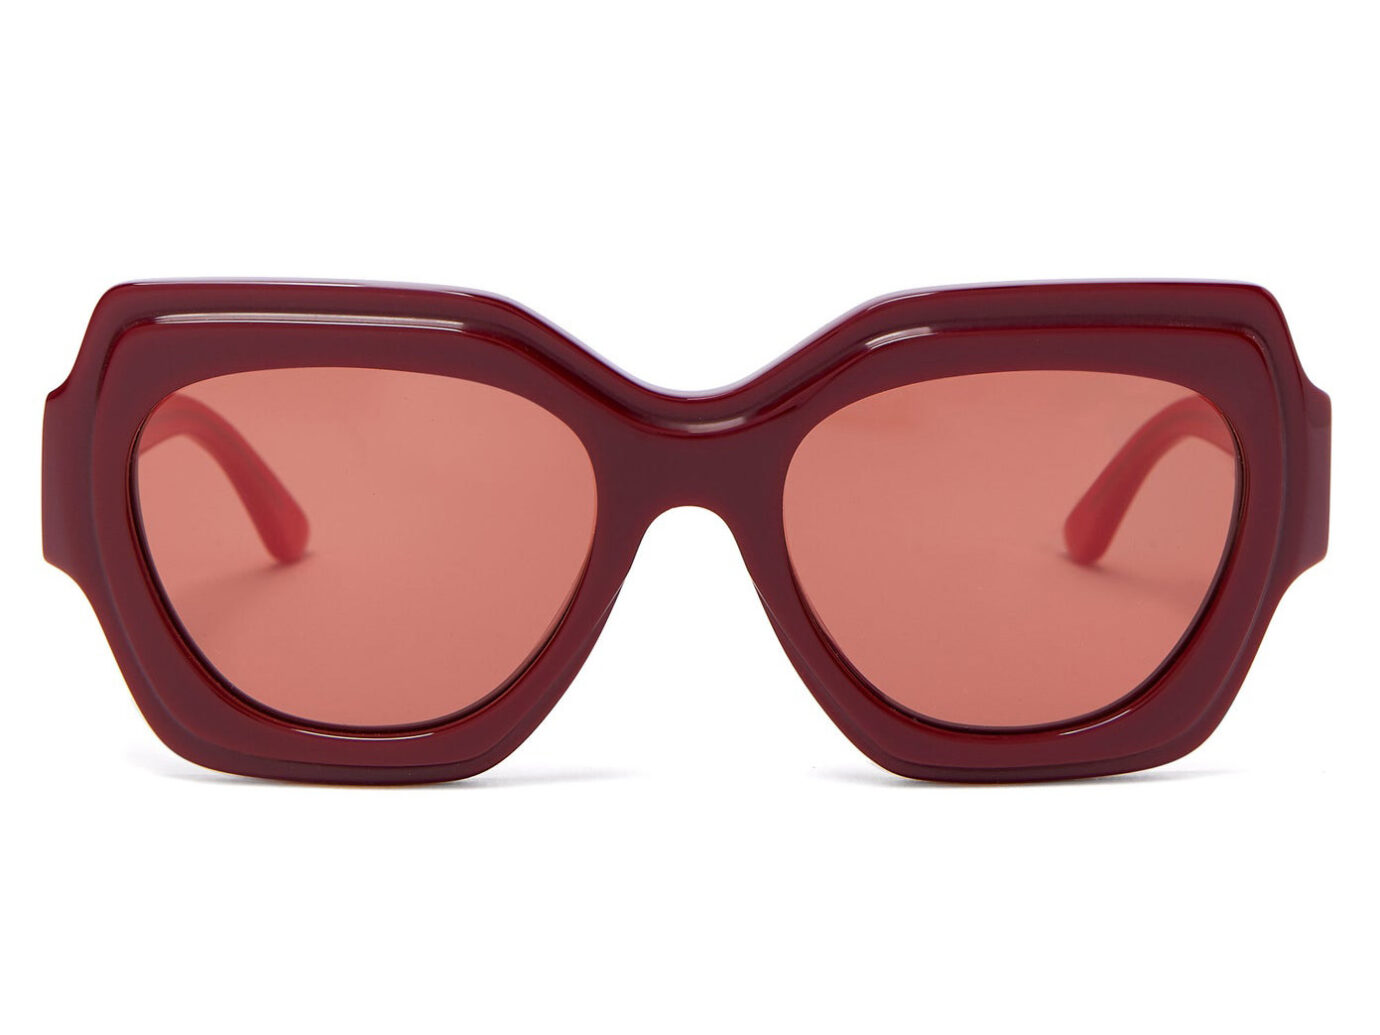 Bi-colour square acetate sunglasses